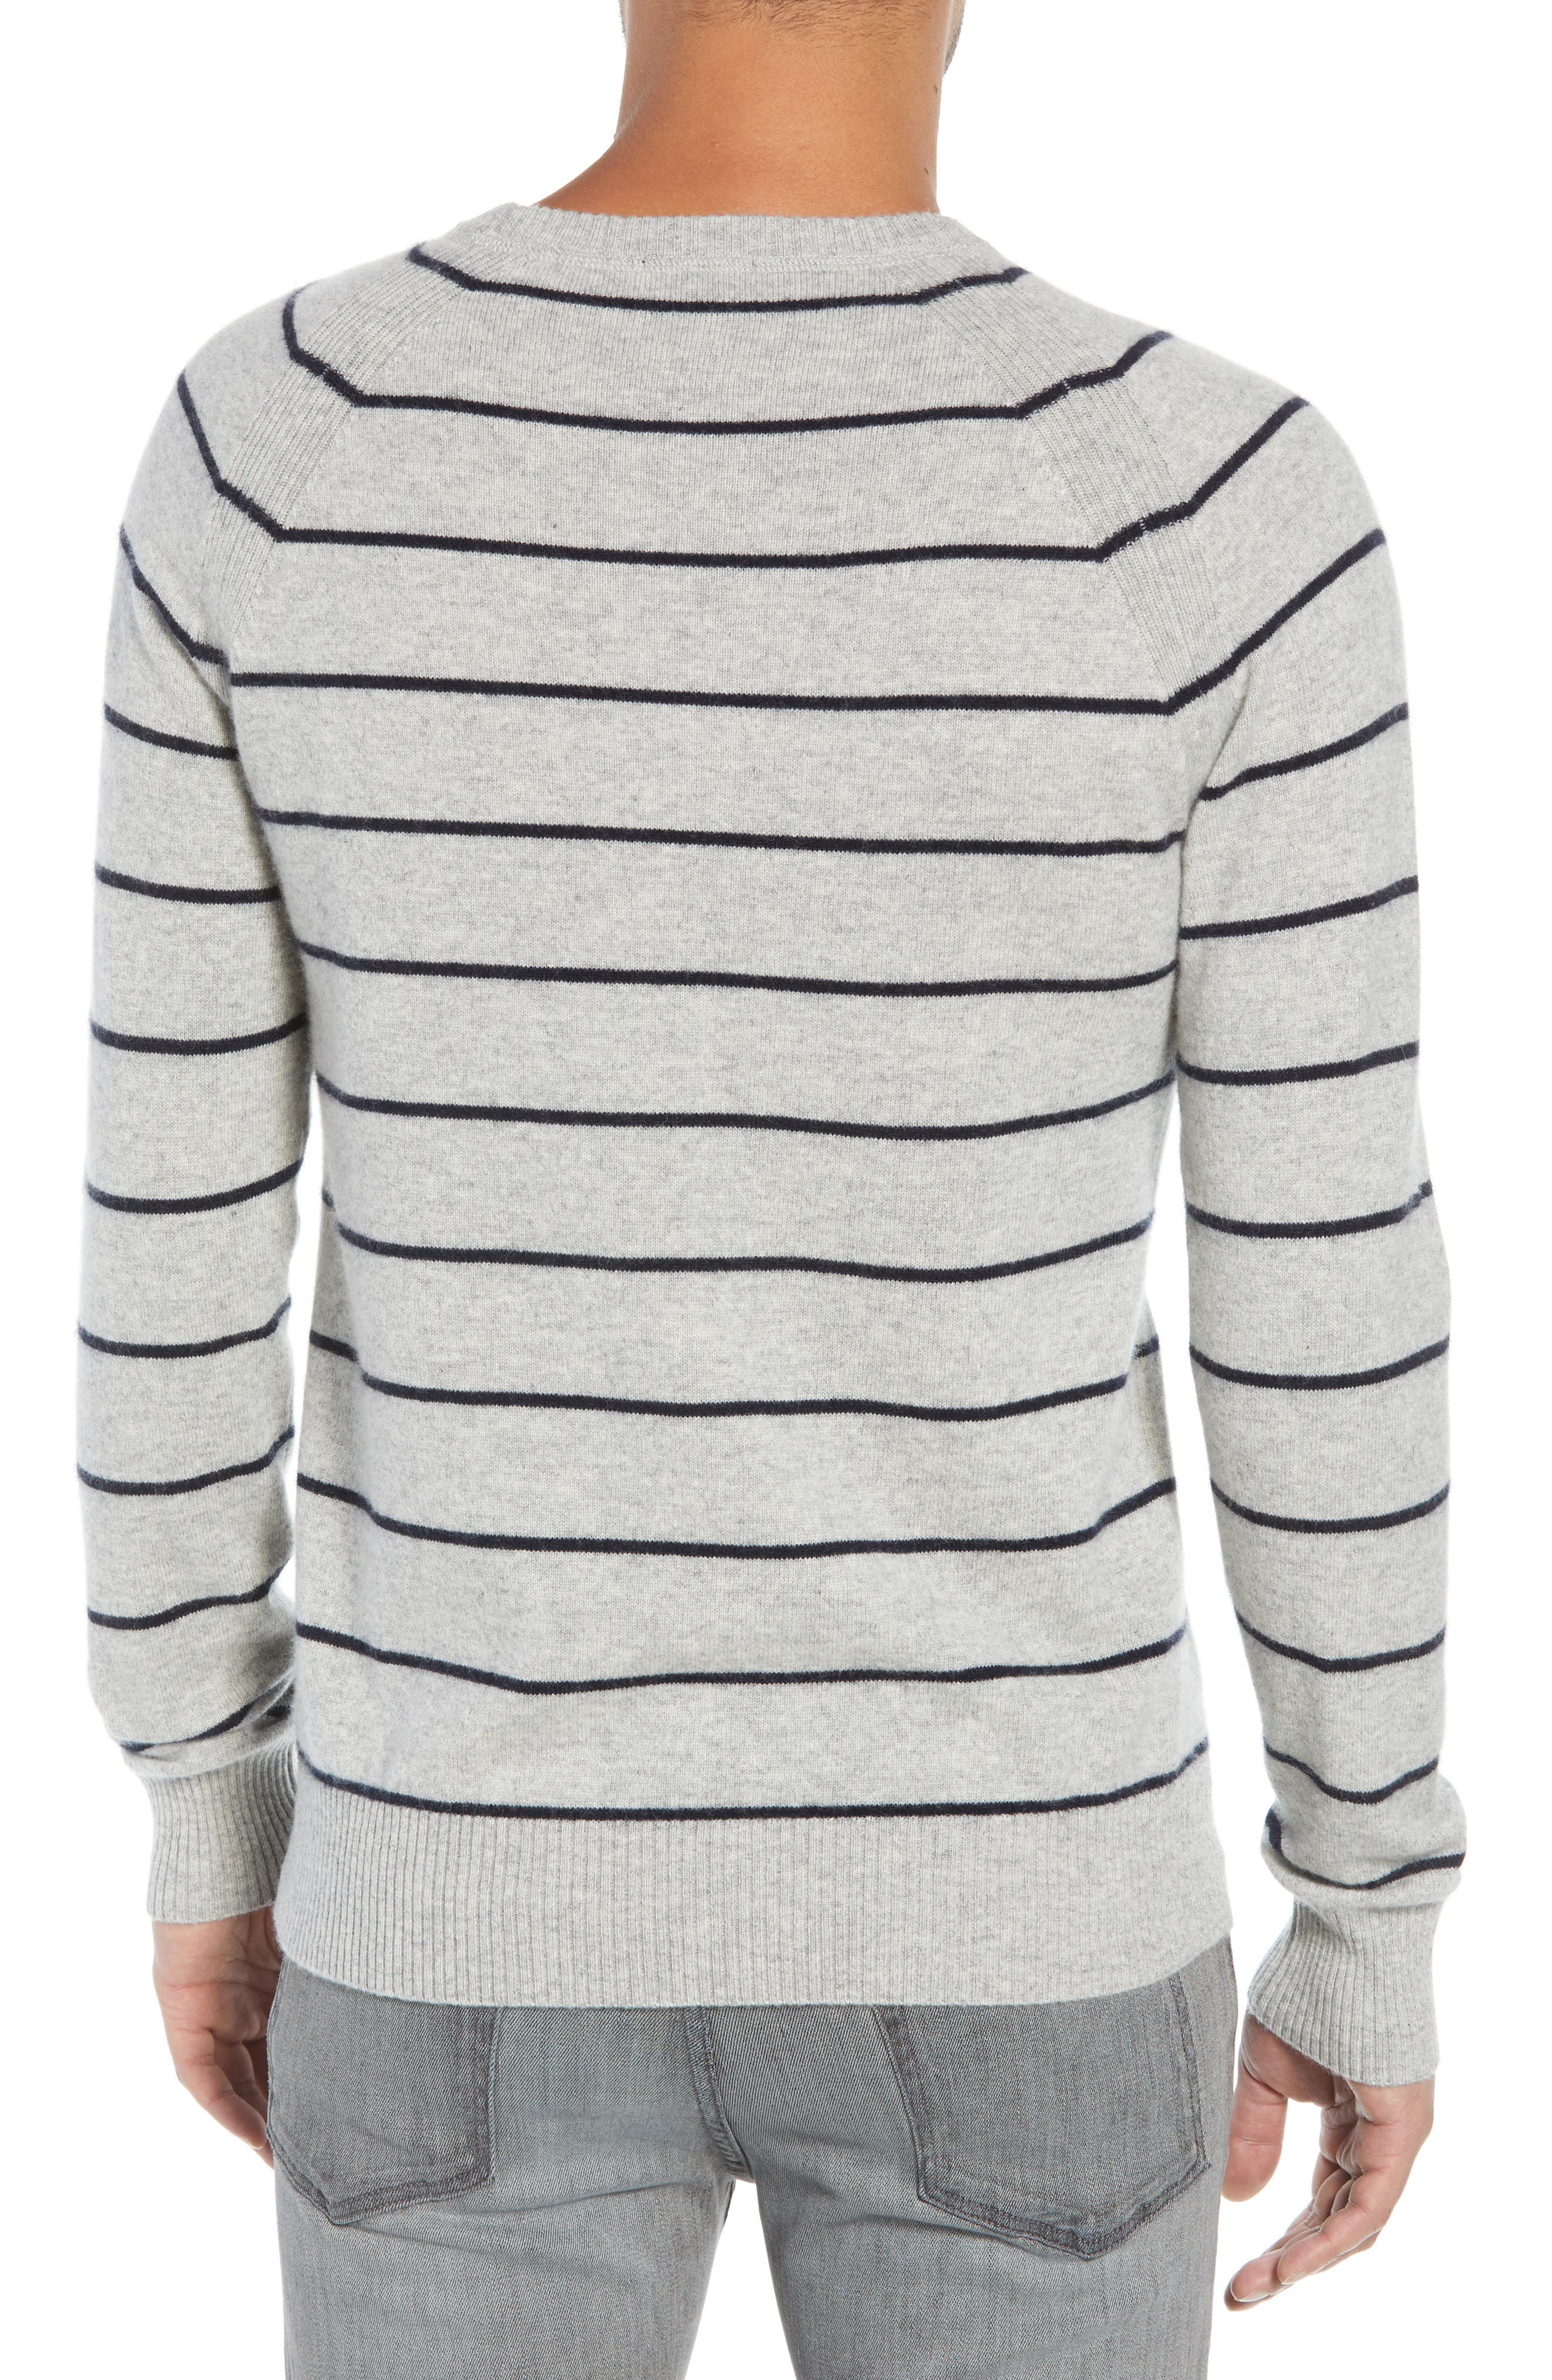 Caleb Stripe Cashmere Sweater,                             Alternate thumbnail 2, color,                             LIGHT HEATHER GREY/ NAVY